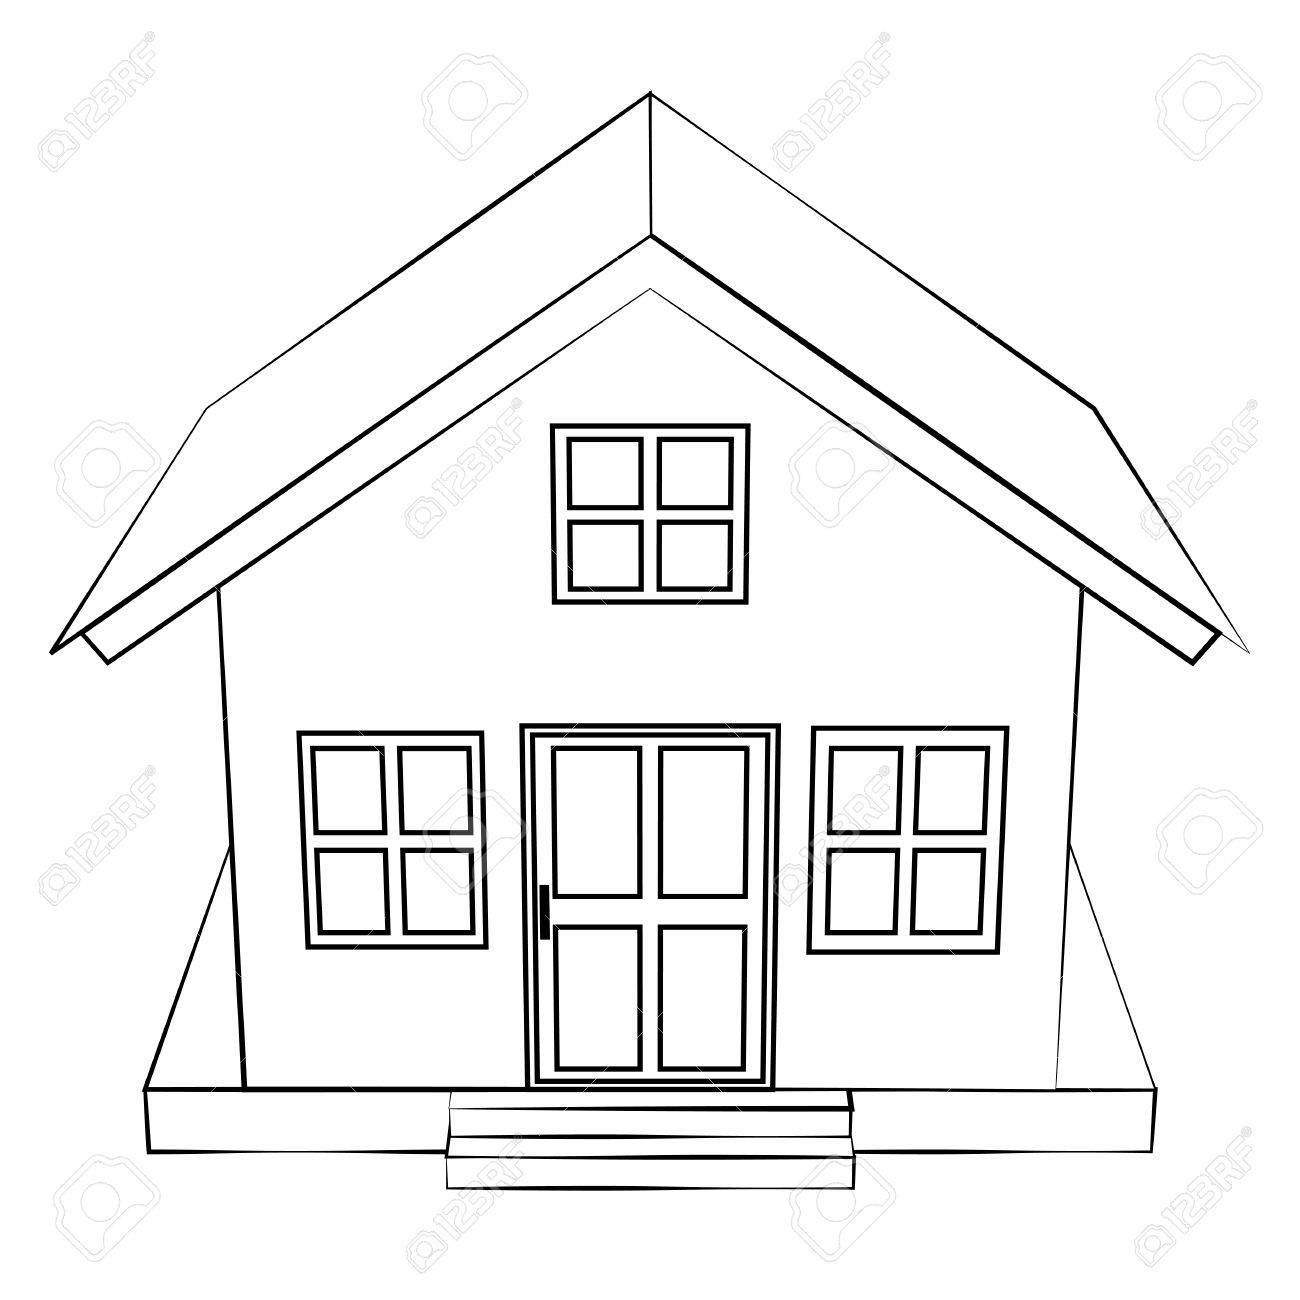 House outline picture -  Black Outline Vector House On White Background Royalty Free Outline Of Home Black Outline Vector House